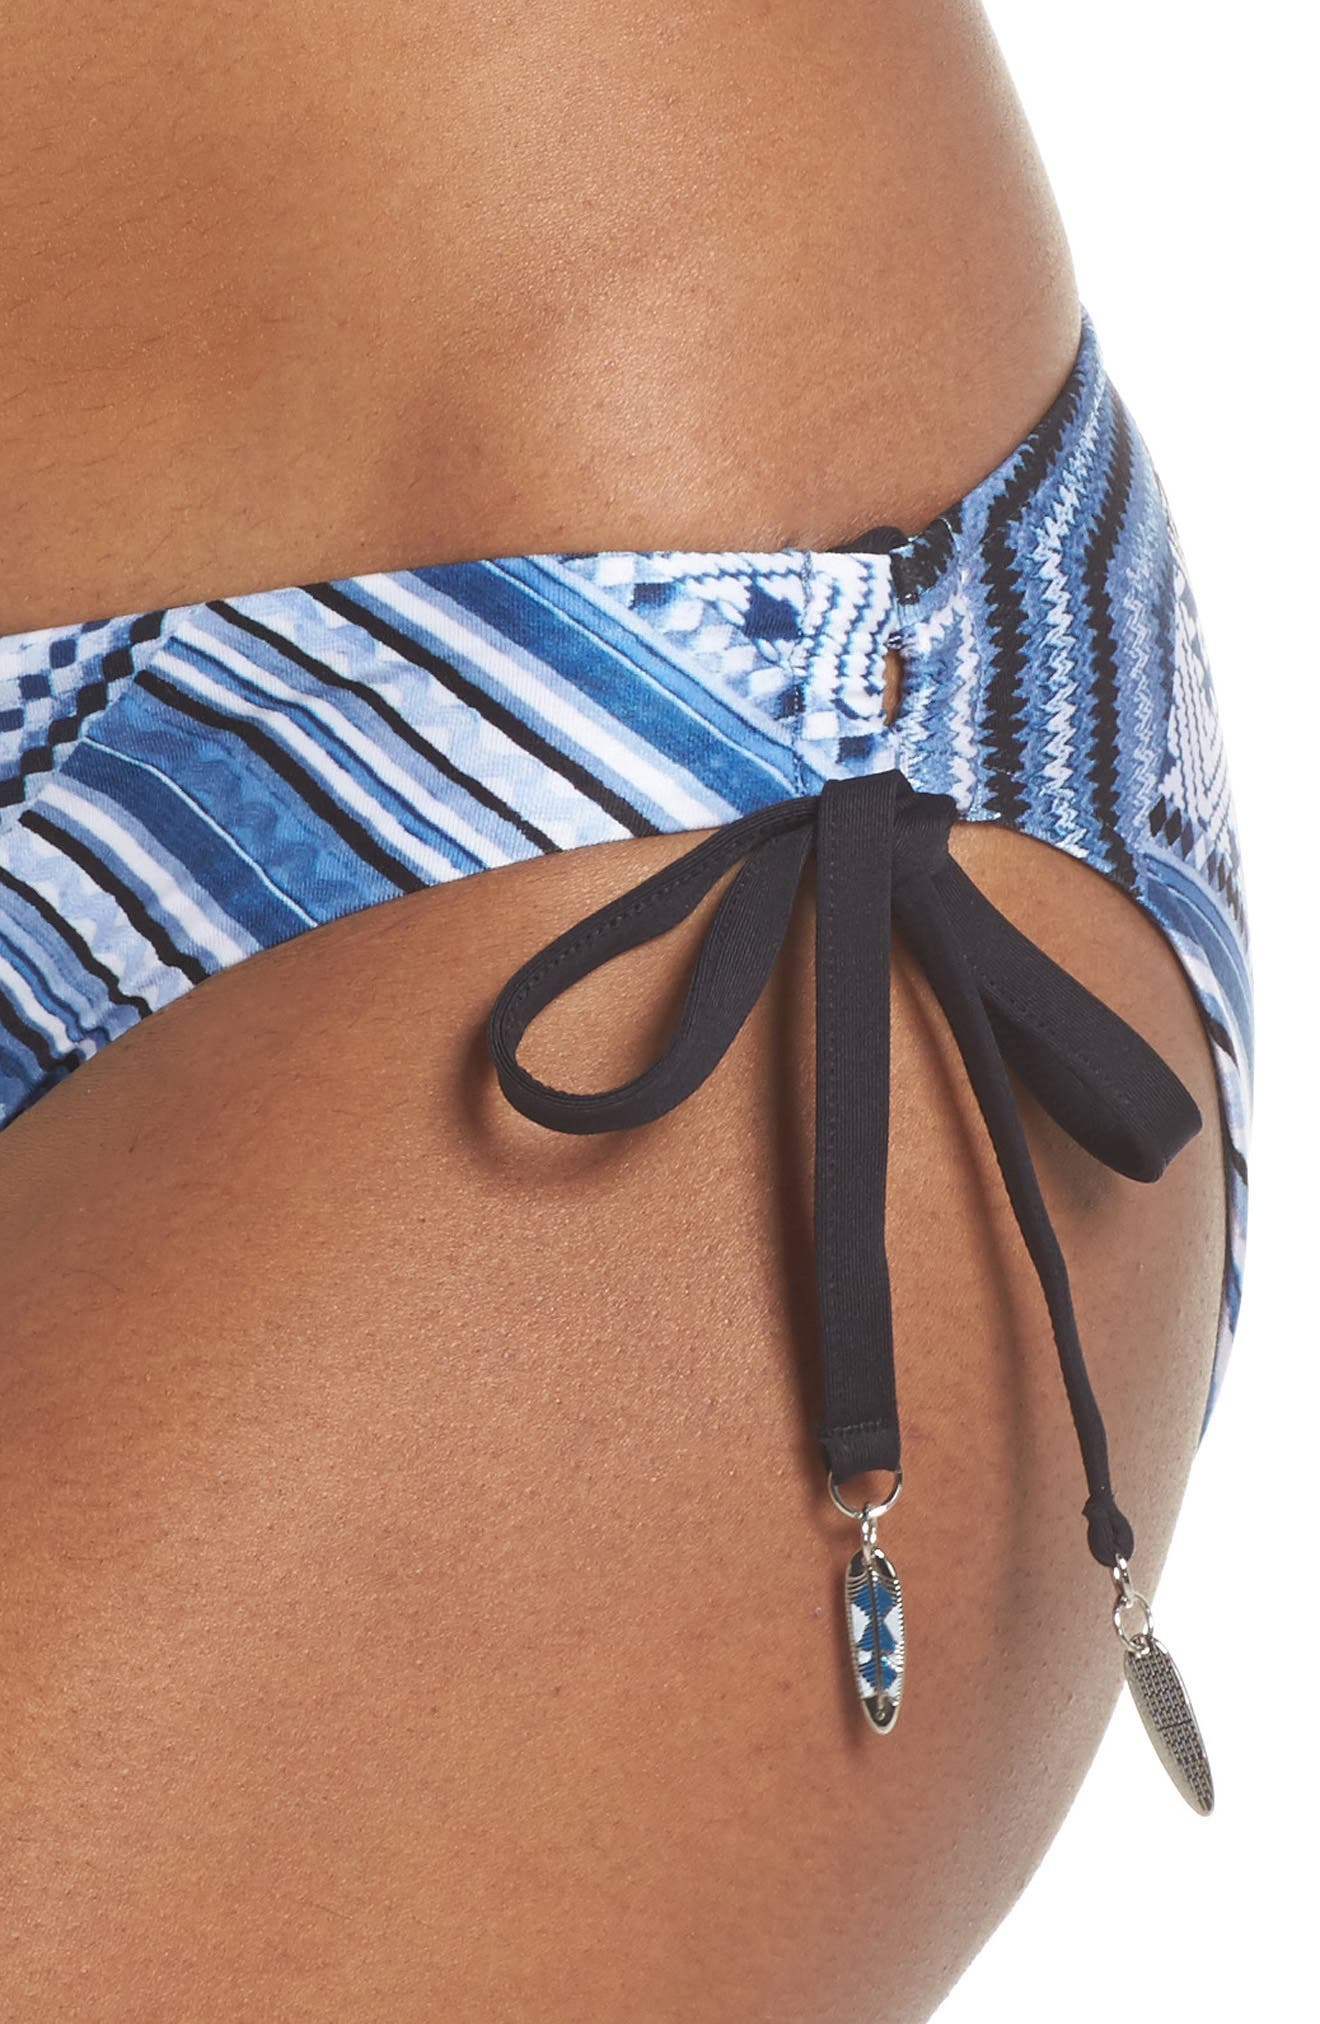 Desert Tribe Triangle Bikini Top,                             Alternate thumbnail 4, color,                             400